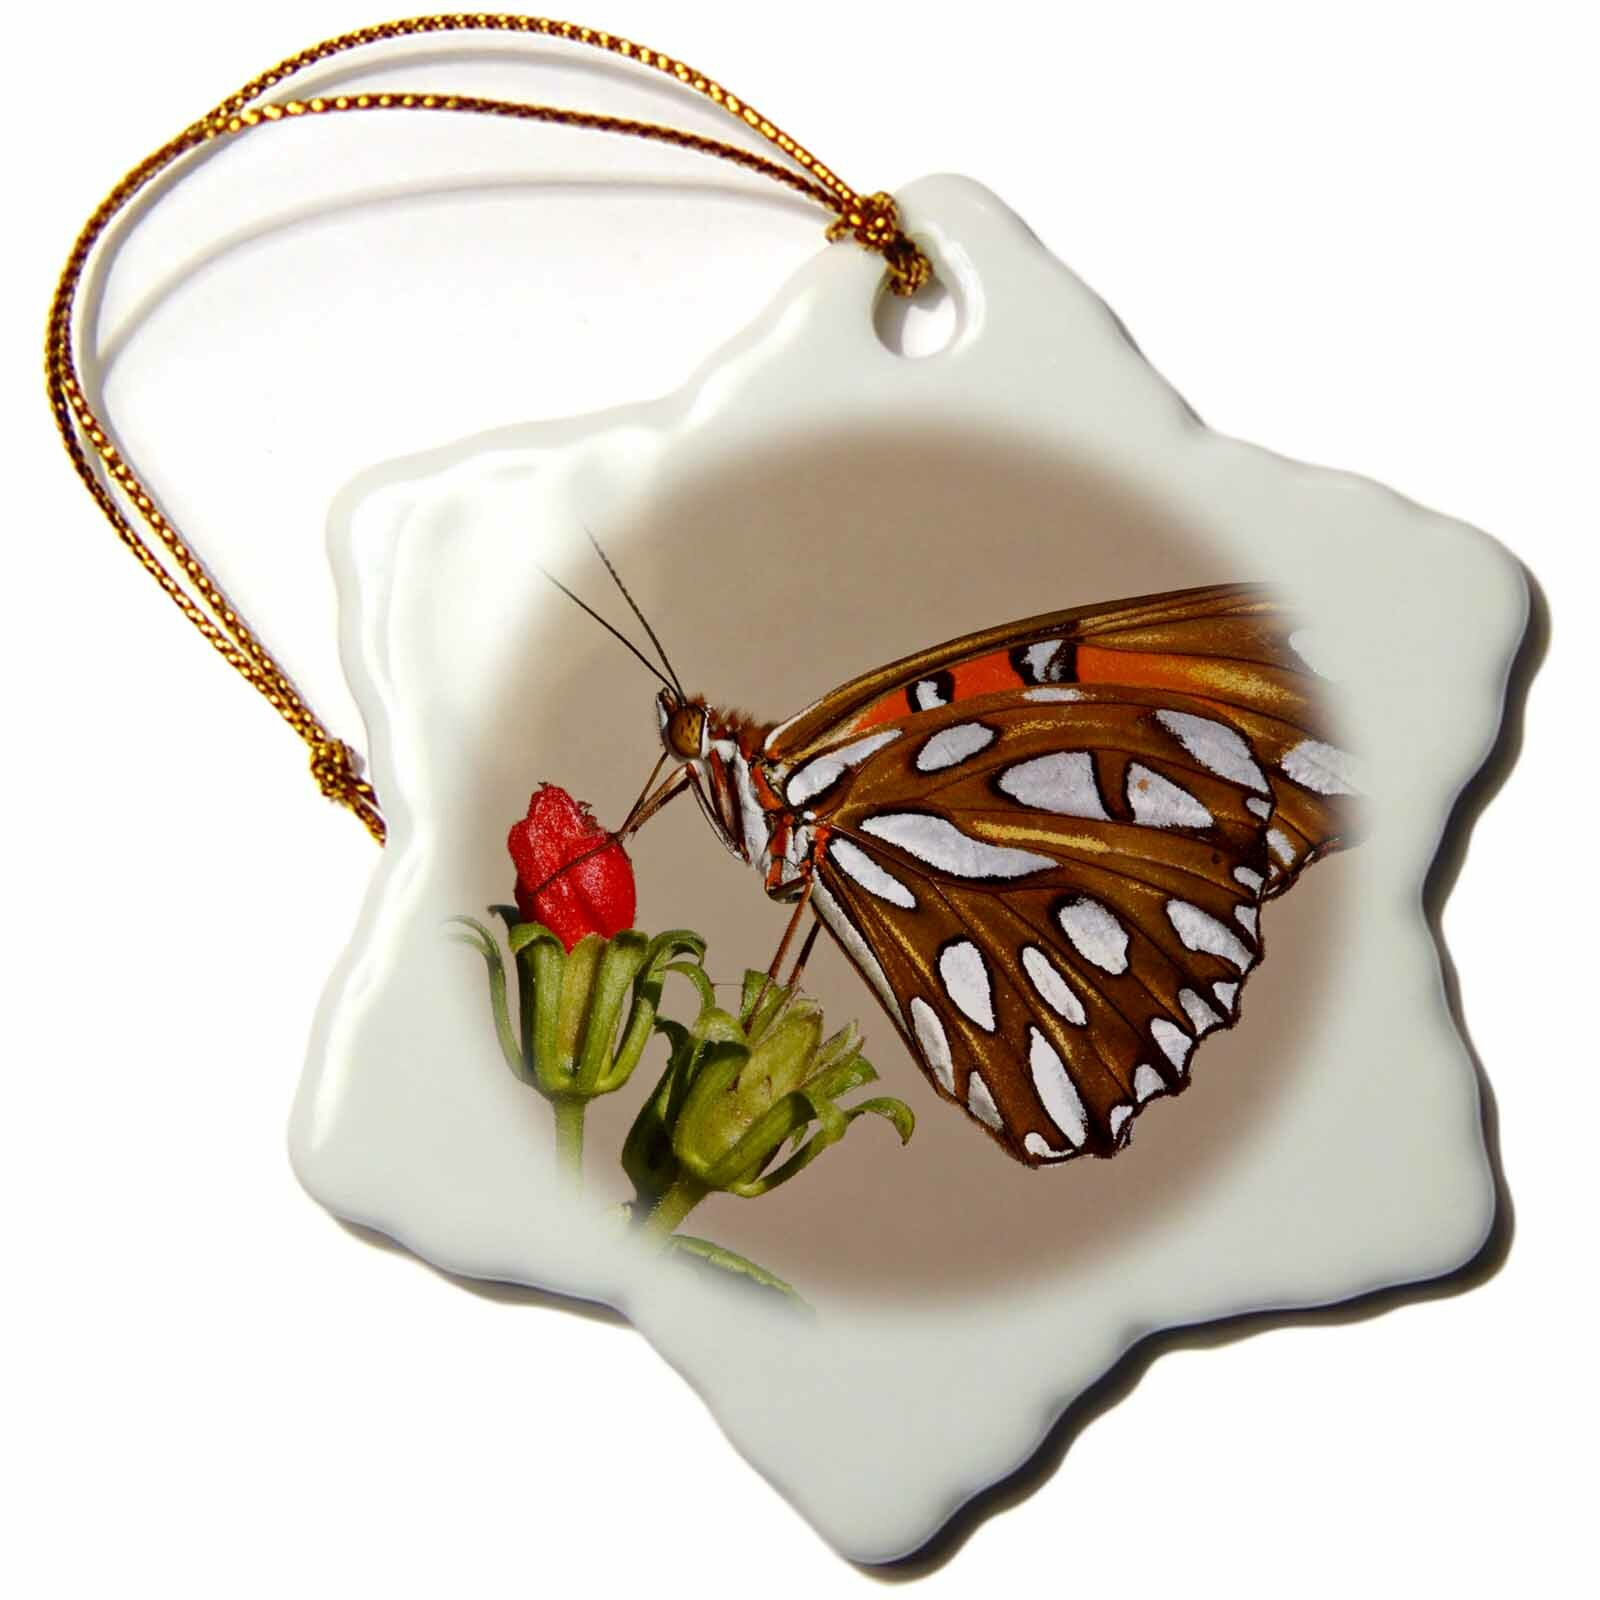 The Holiday Aisle Gulf Fritillary Butterfly Nectaring On Wild Flowers Snowflake Holiday Shaped Ornament Wayfair